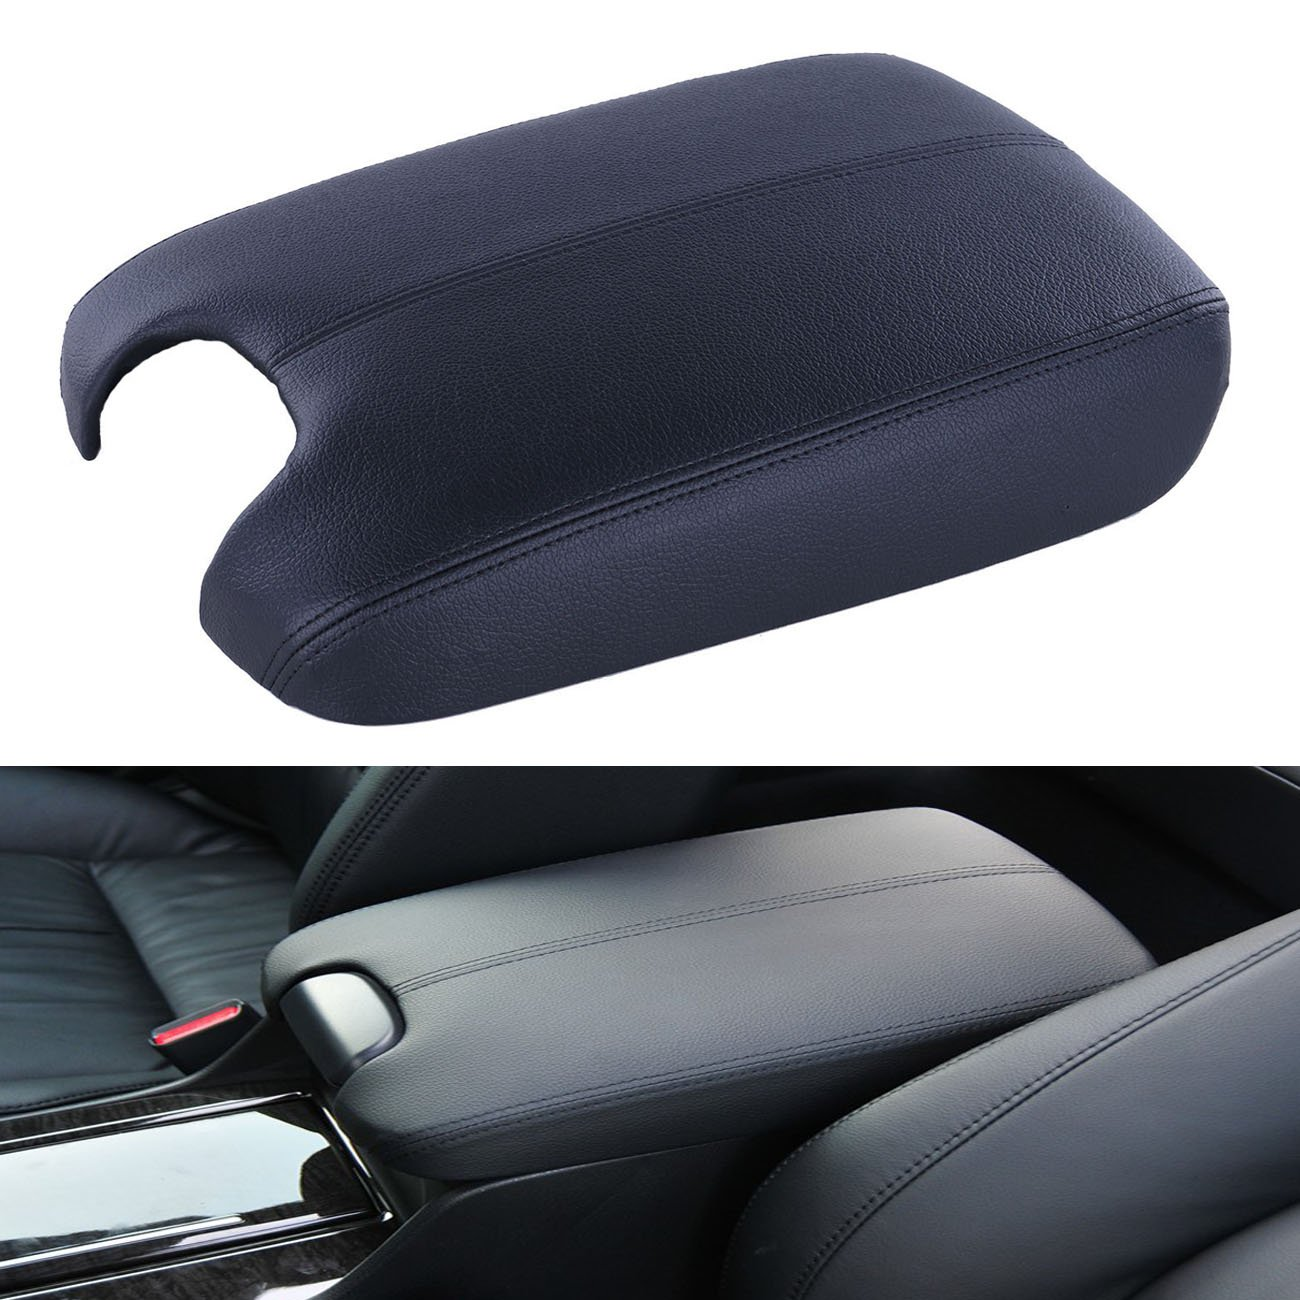 Tips4wise 1pcs PU Leather Console Lid Armrest Cover Tan Black For 2008-2012 Honda Accord